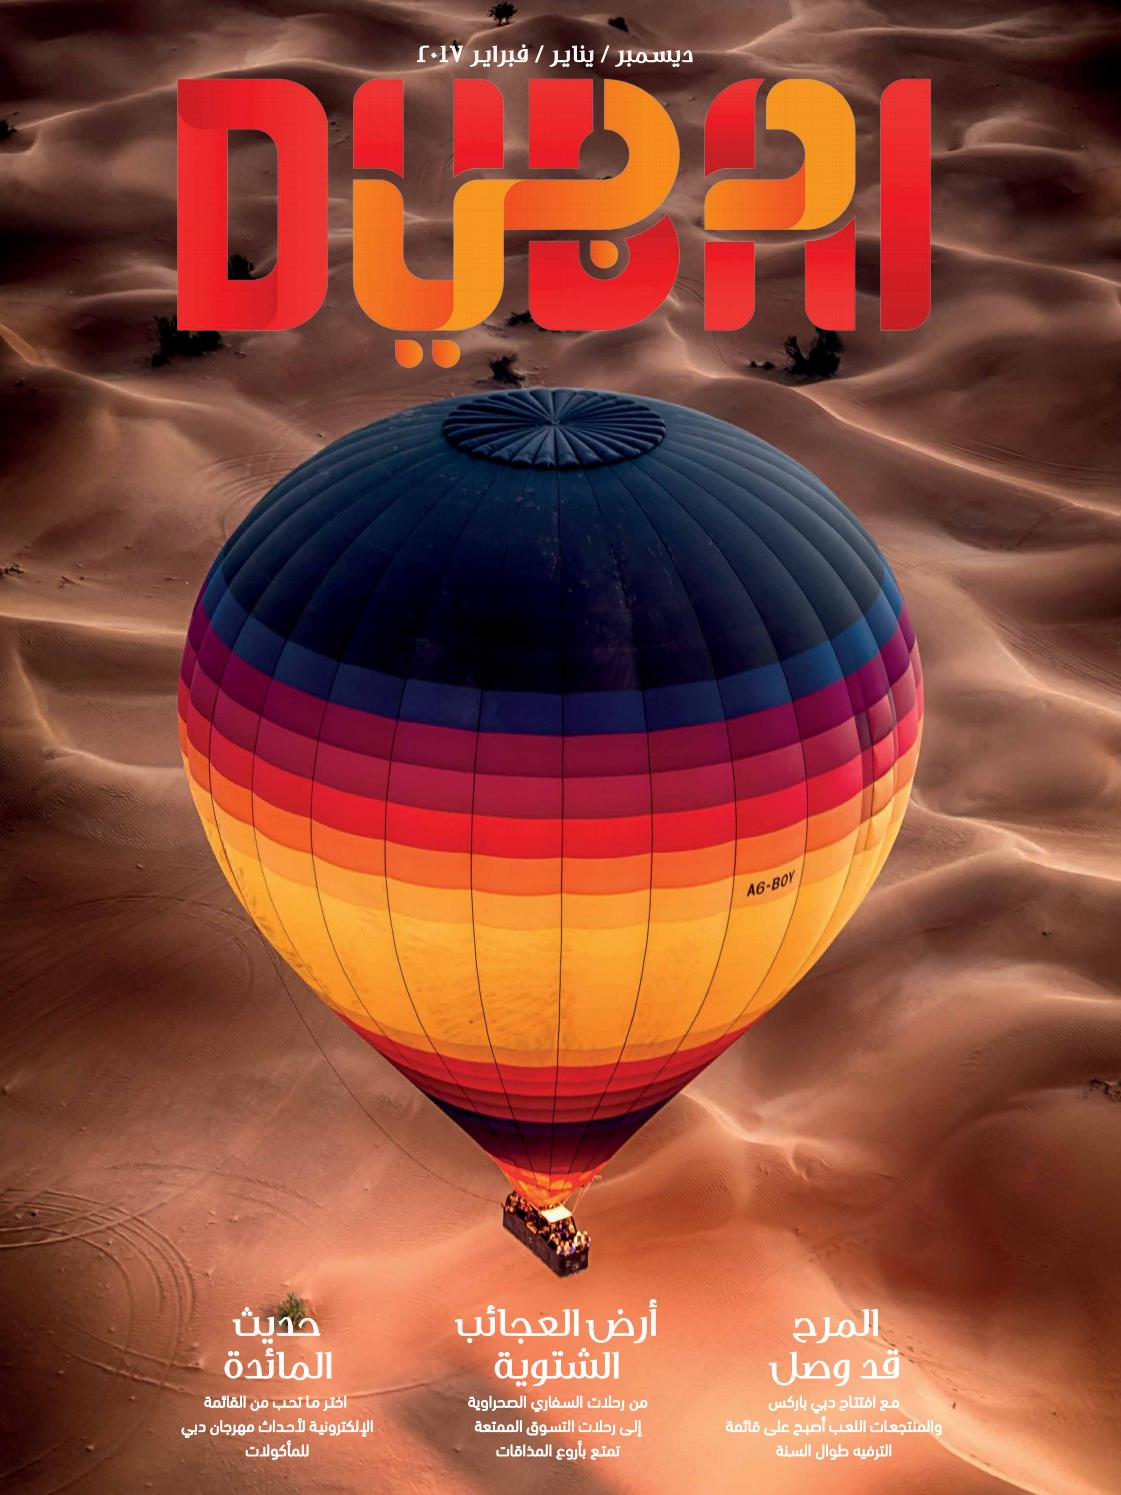 1cfb07b34 DUBAI - Arabic - December-January-February - 2017 by Hot Media - issuu